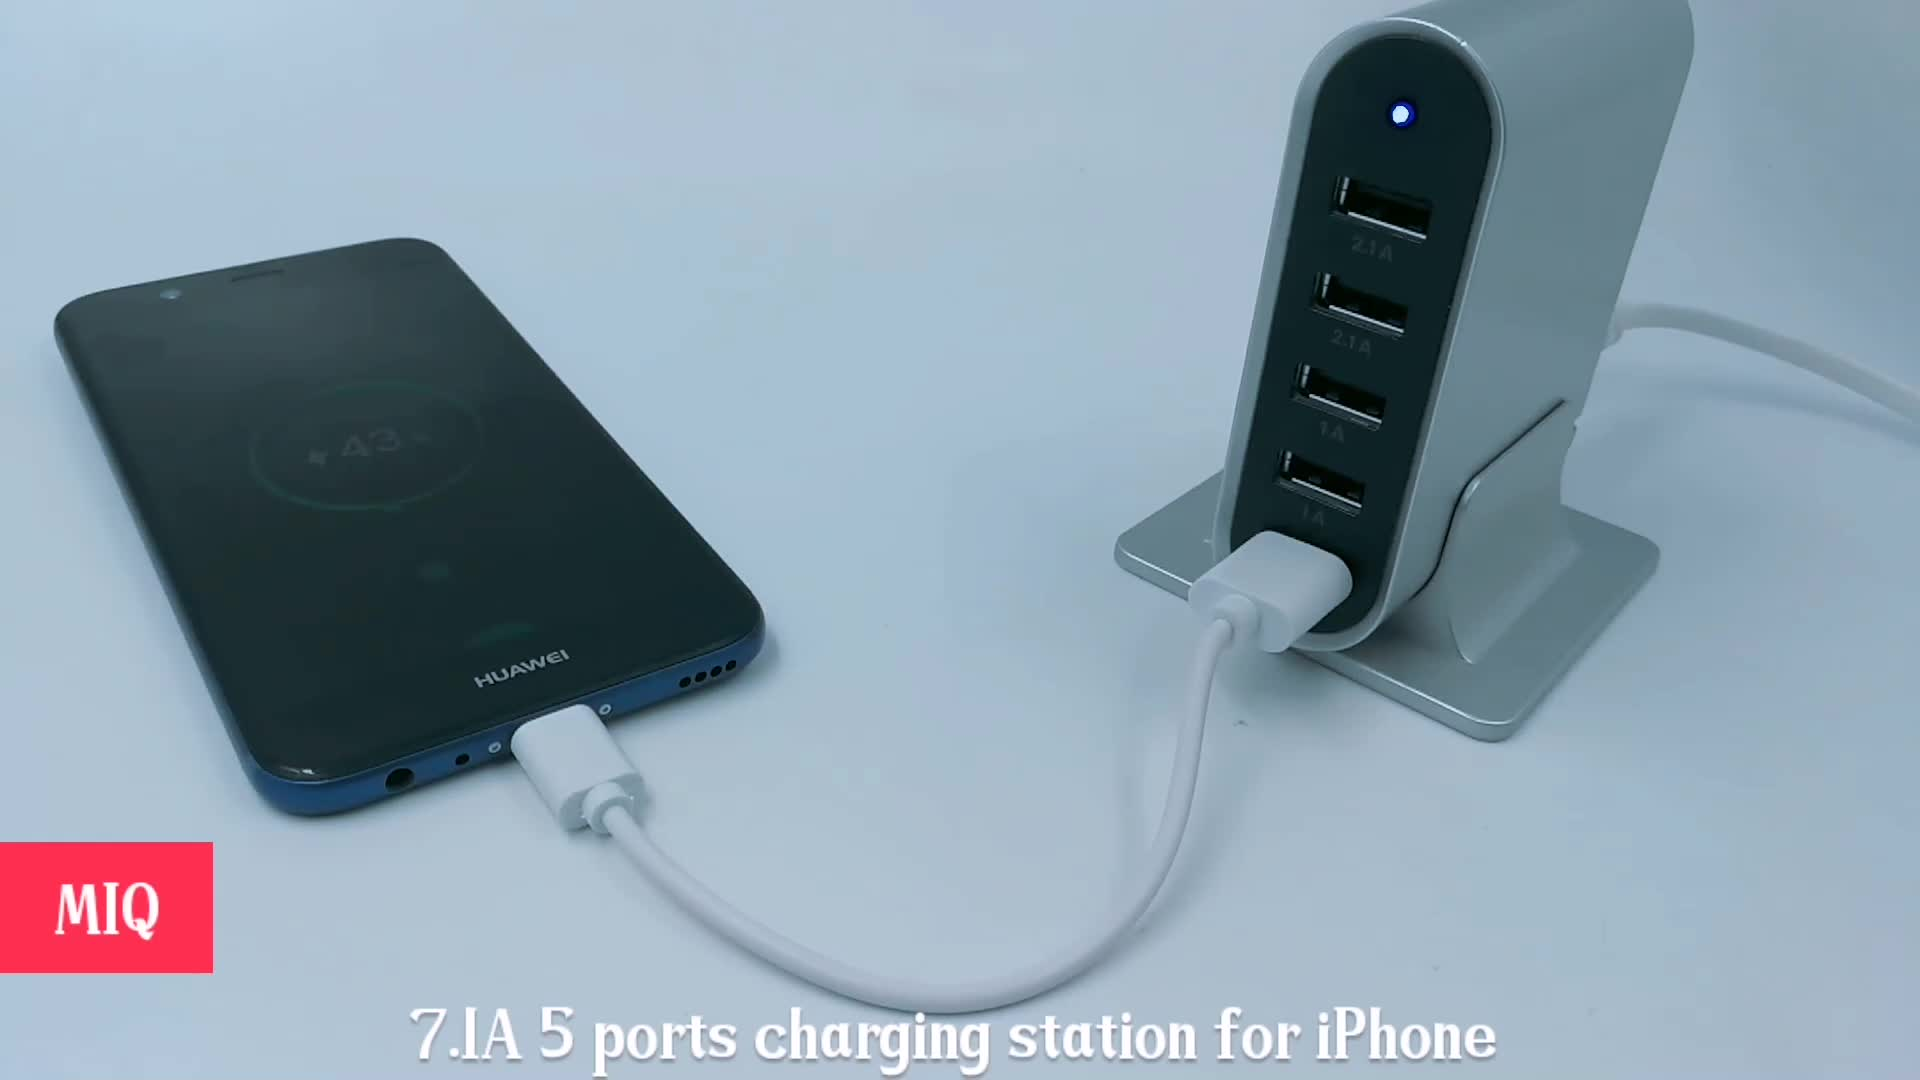 MIQ Multi usb charger desktop charger station with AC power plug